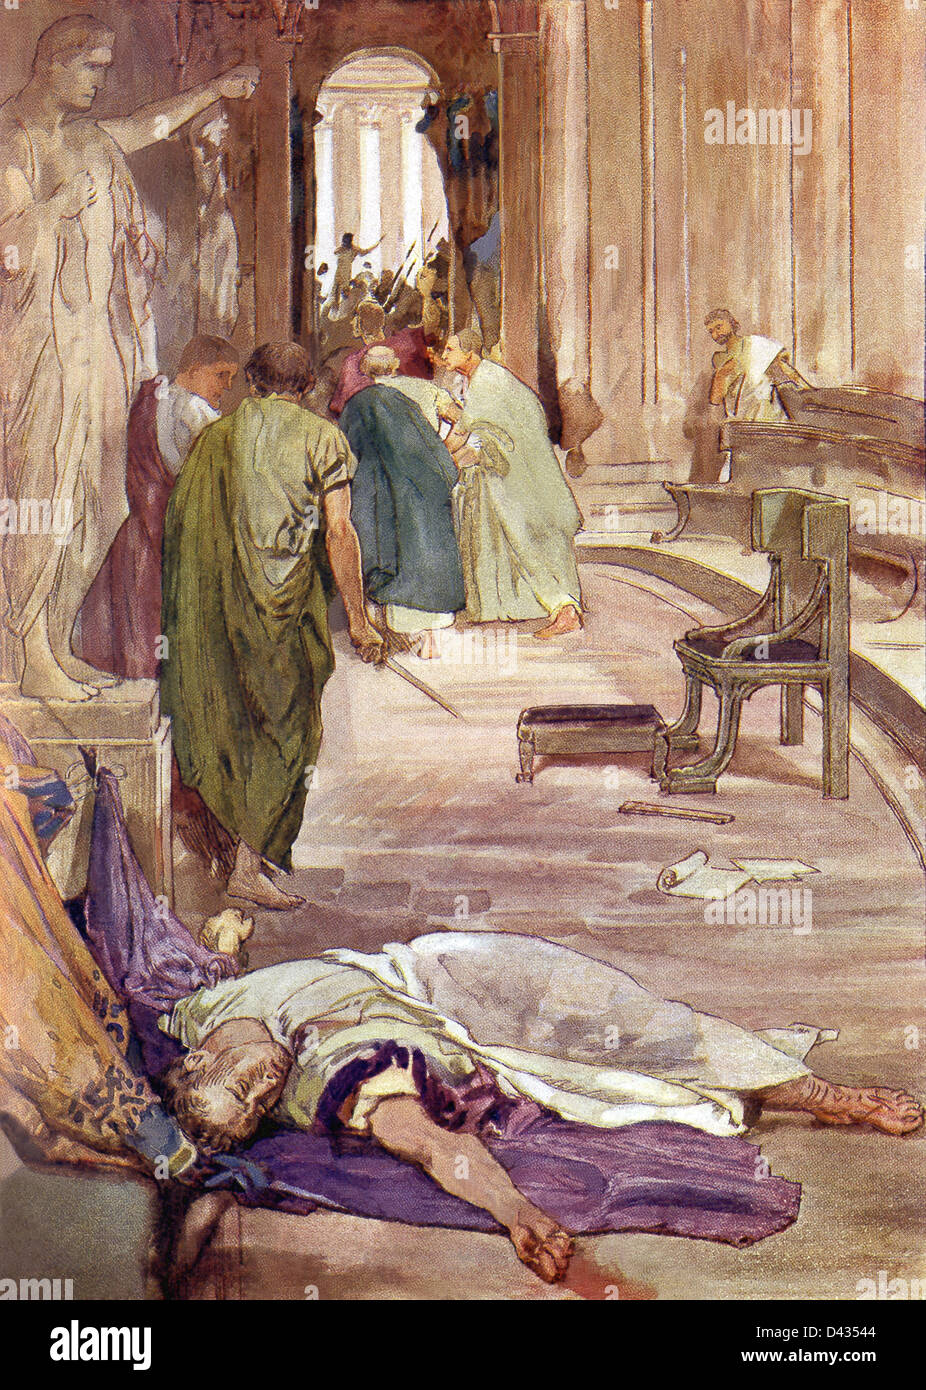 On March 15, 44 B.C., the Ides of March, Brutus, Cassius, and several other conspirators assassinated Julius Caesar. - Stock Image